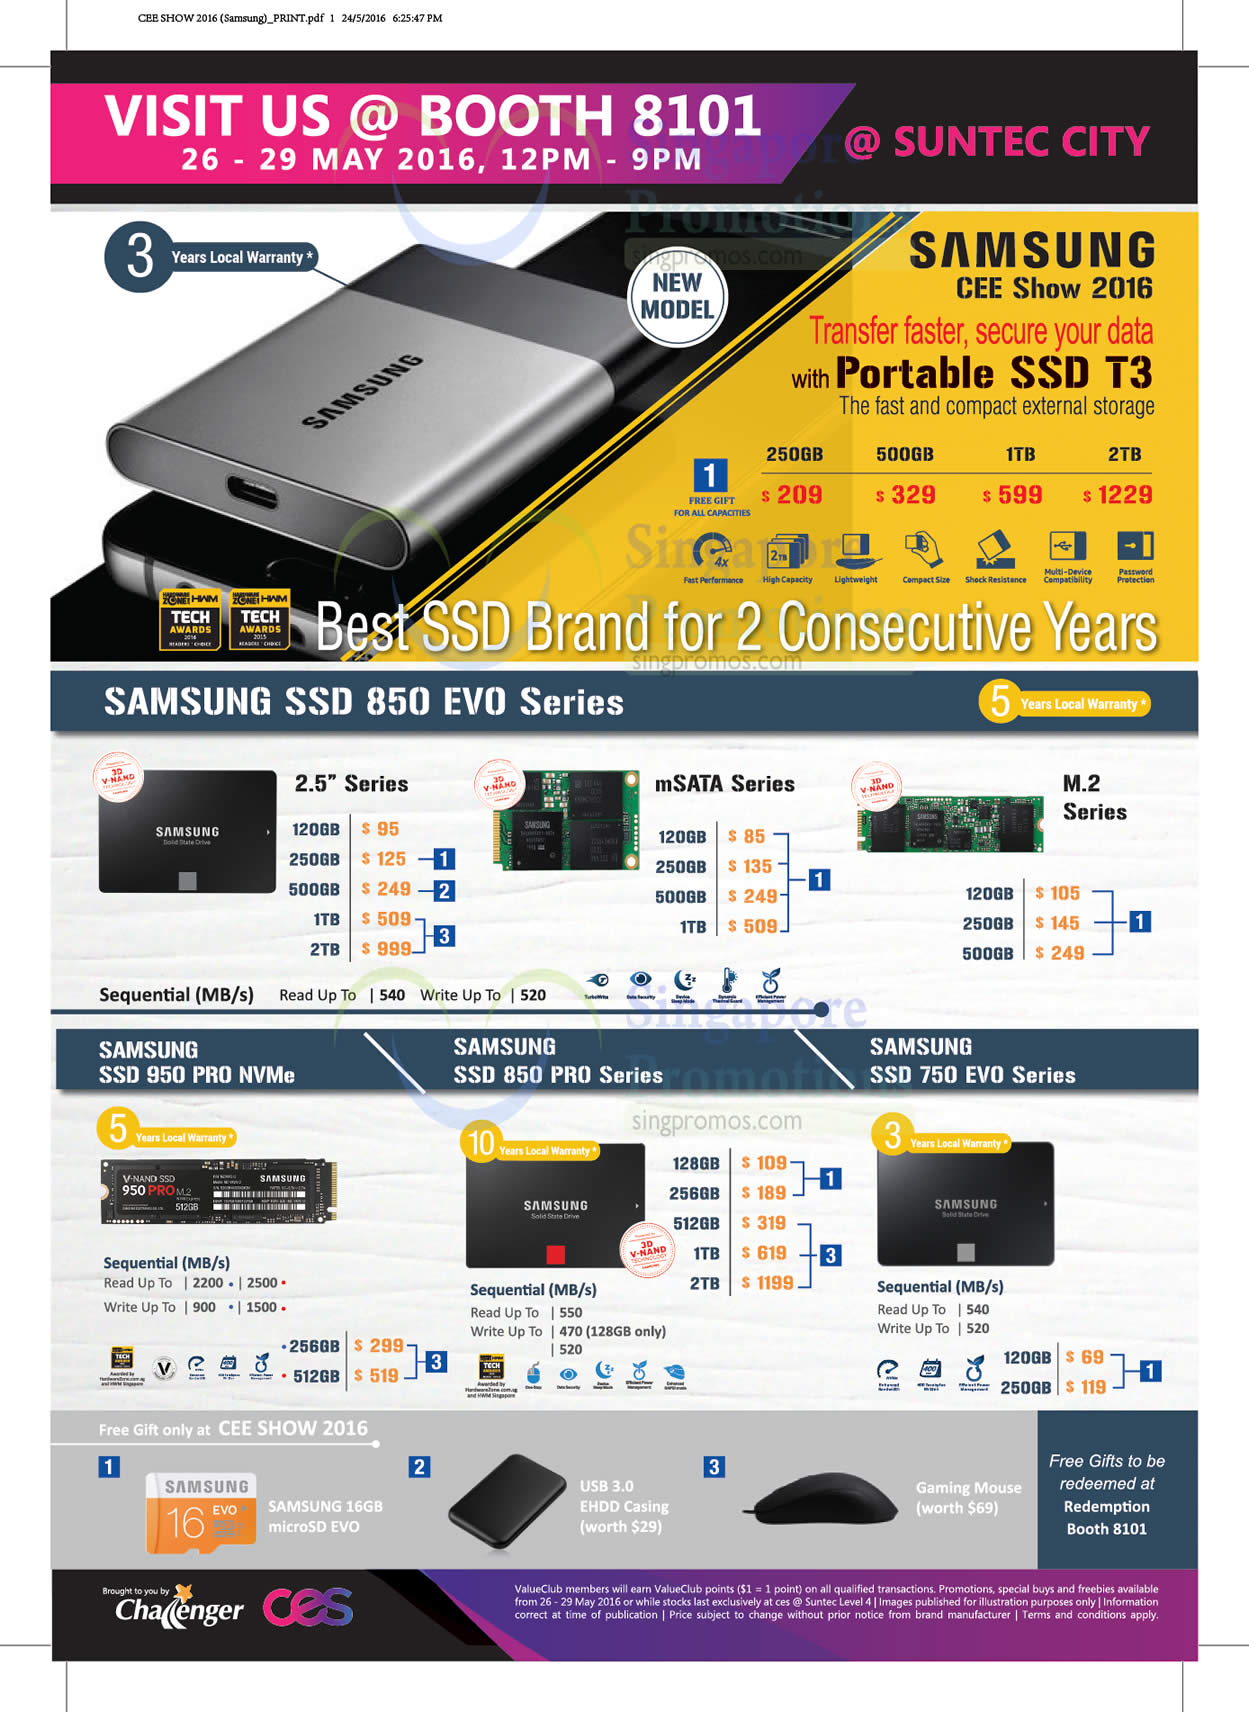 Samsung Ssd Coupon Couponcabin Iphone App Hardisk Internal Hardis Laptop 850 Evo 25 Inch Sata 250gb Goodshop Works With To Offer Users The Best Discounts And Makes A Donation Your Favorite Cause When You Shop